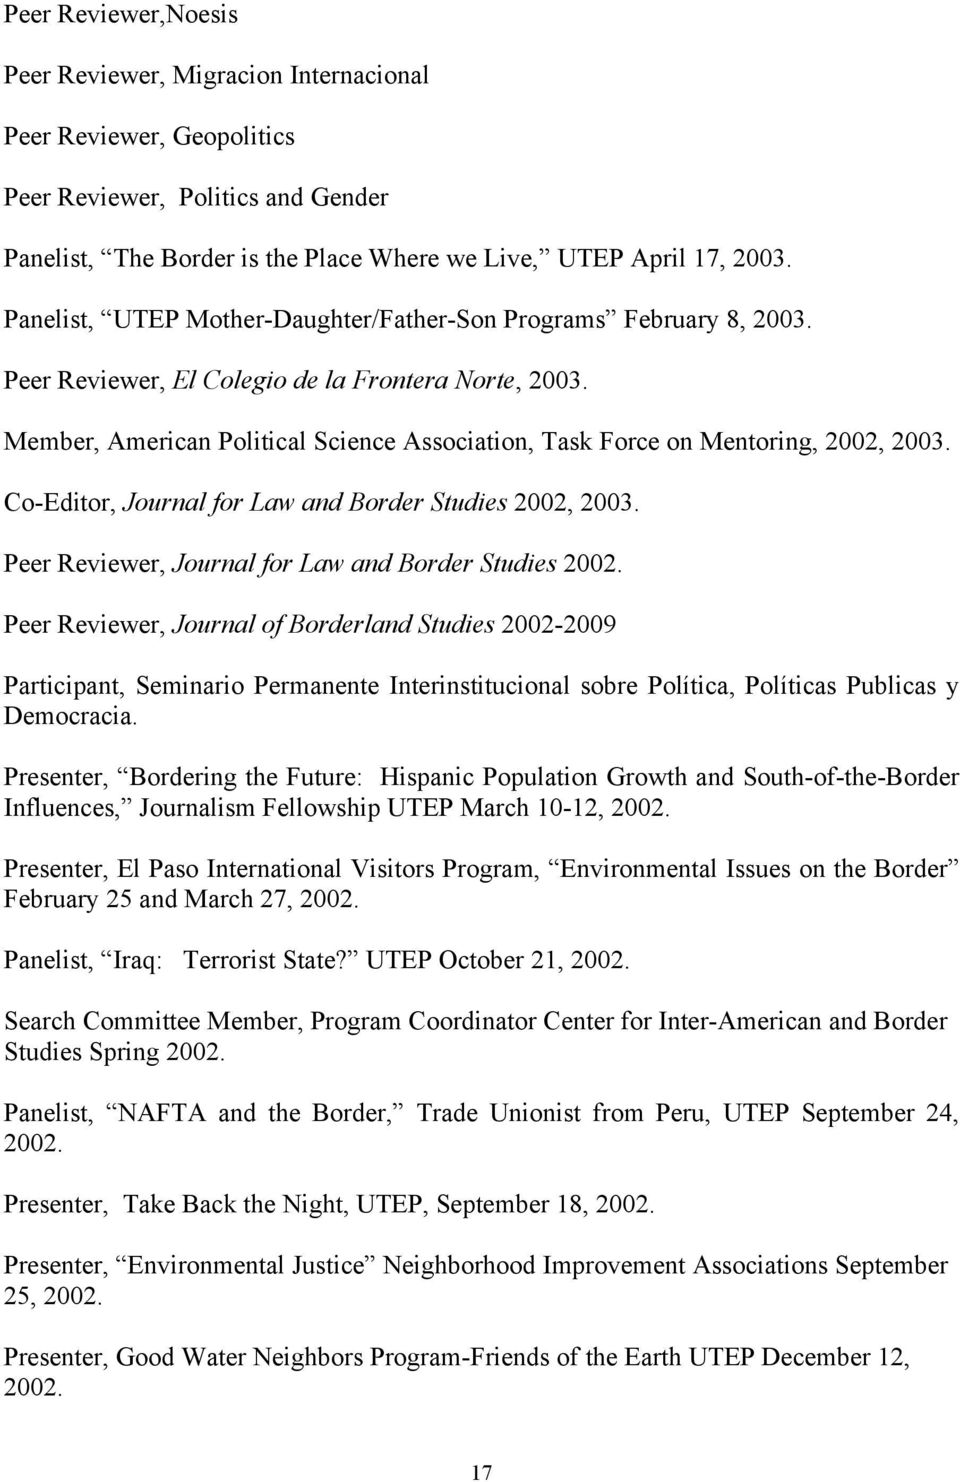 Member, American Political Science Association, Task Force on Mentoring, 2002, 2003. Co-Editor, Journal for Law and Border Studies 2002, 2003. Peer Reviewer, Journal for Law and Border Studies 2002.